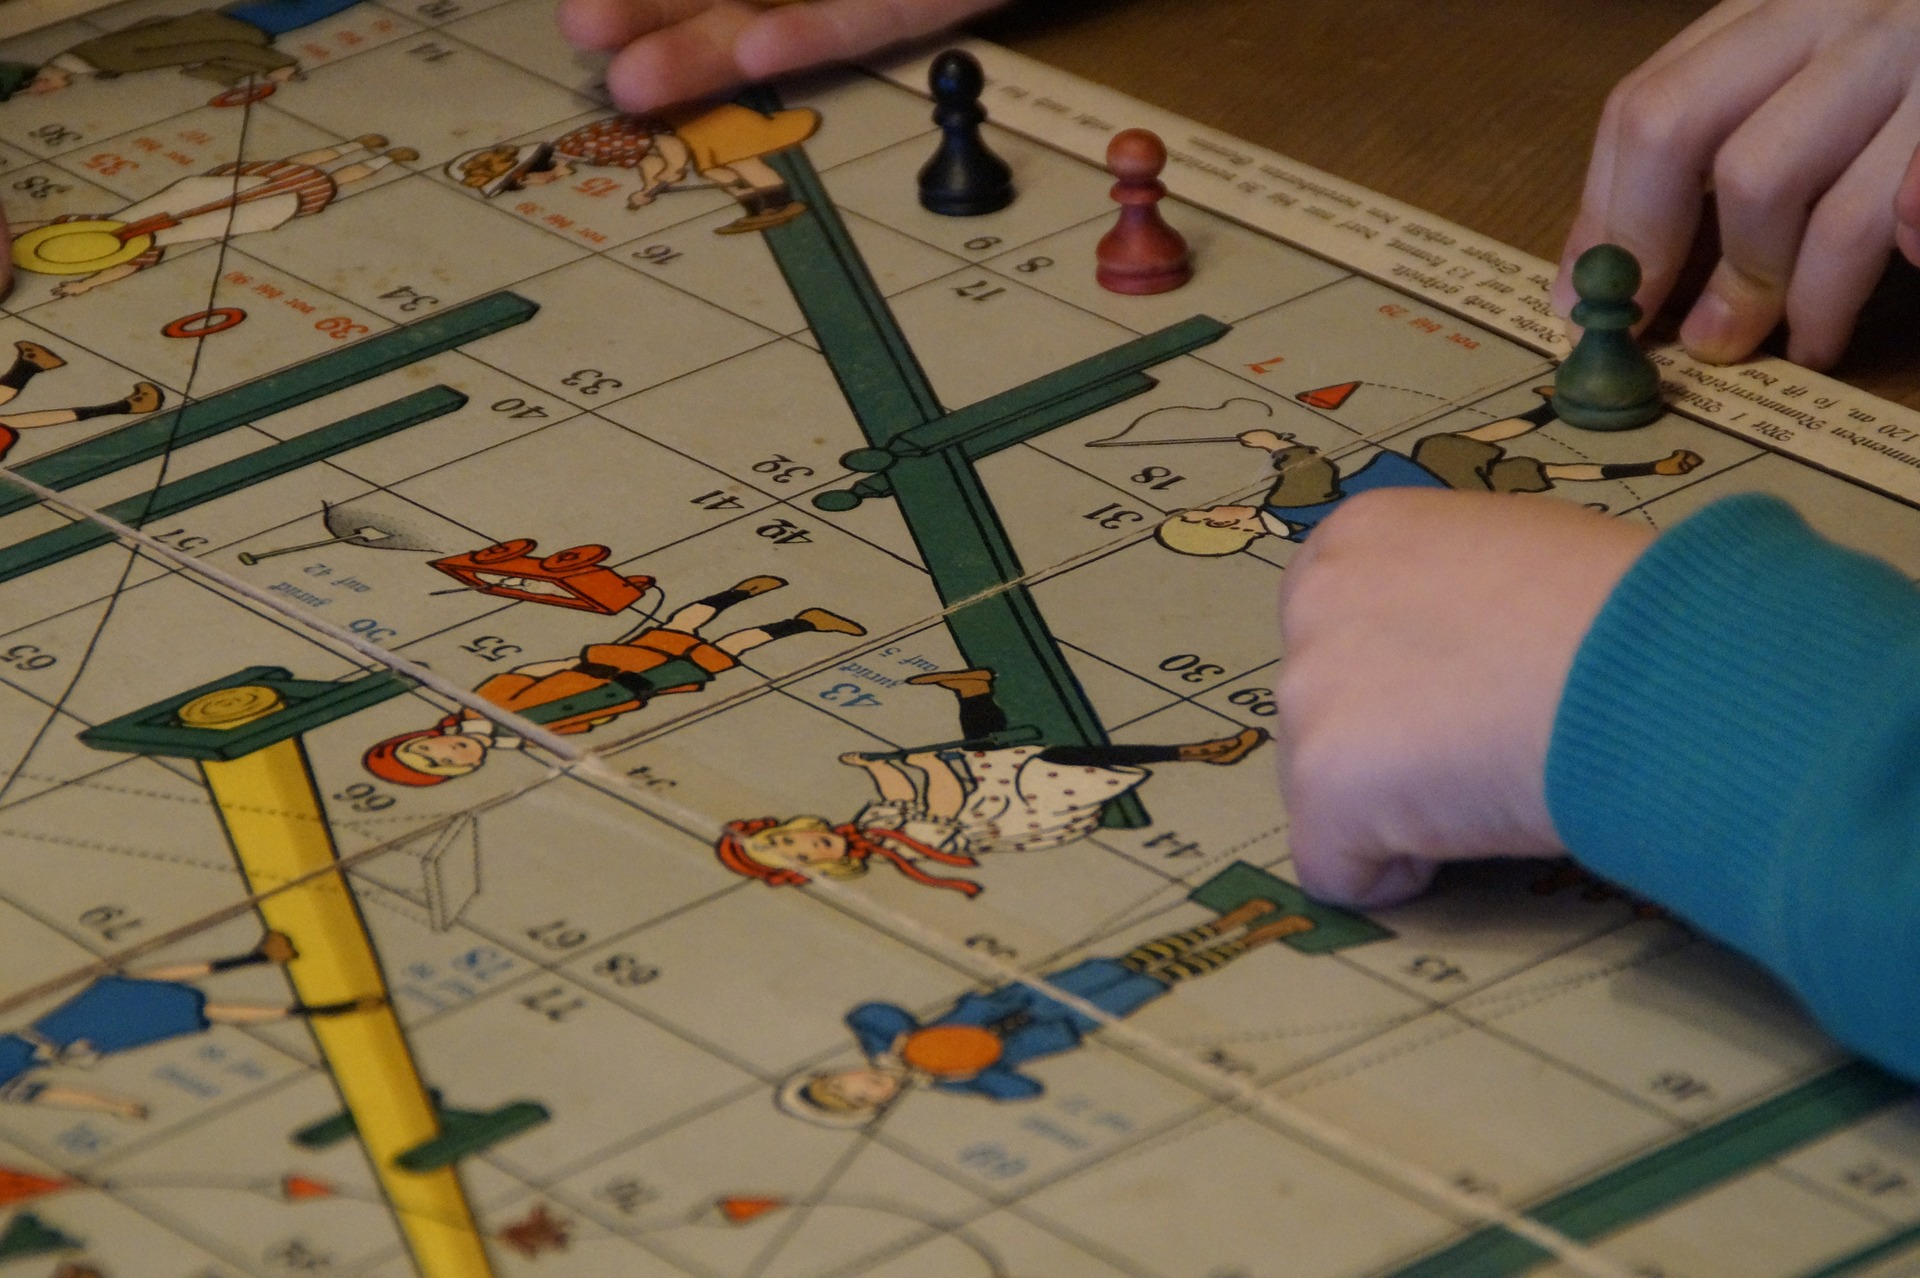 family games, playing with friends and family,